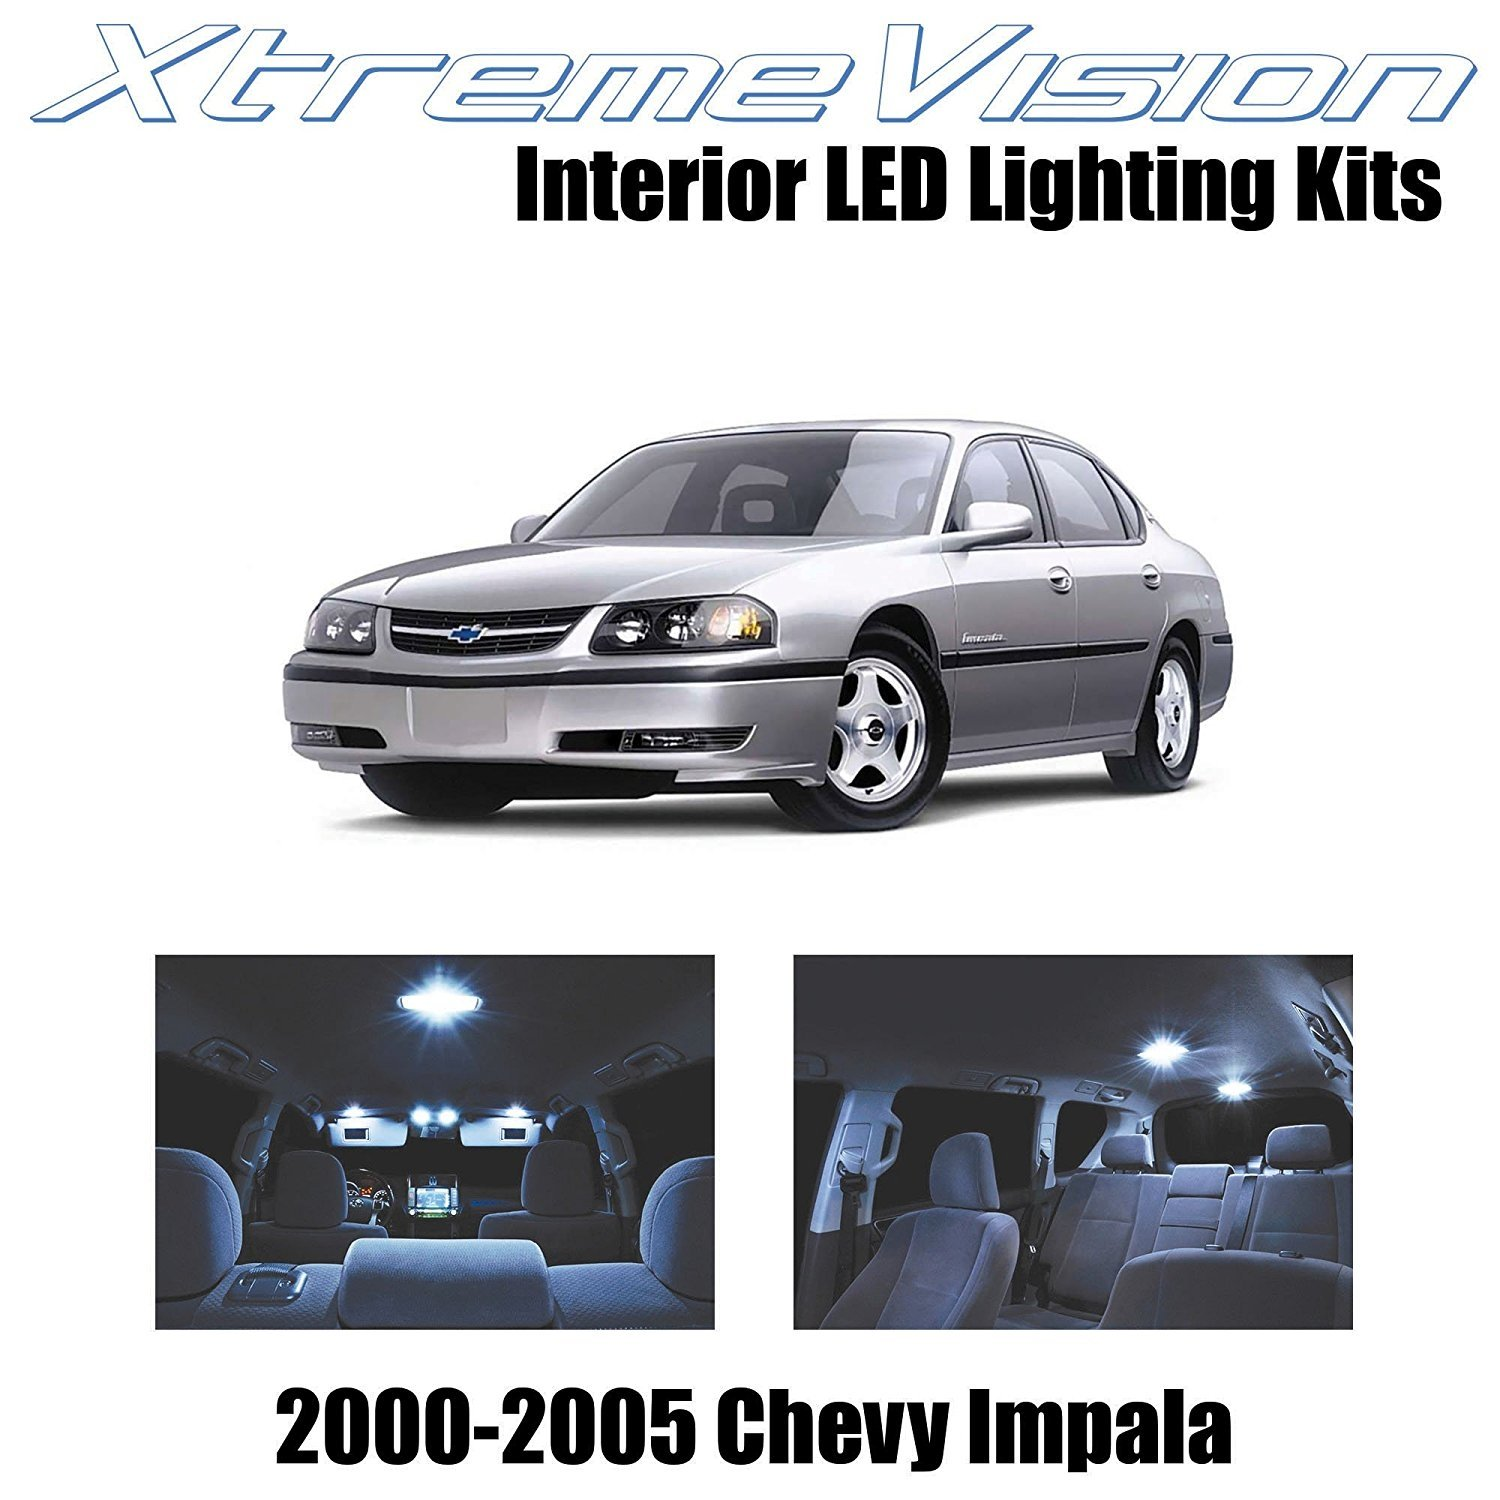 XtremeVision LED for Chevy Impala 2000-2005 (16 Pieces) Cool White Premium Interior LED Kit Package + Installation Tool Tool